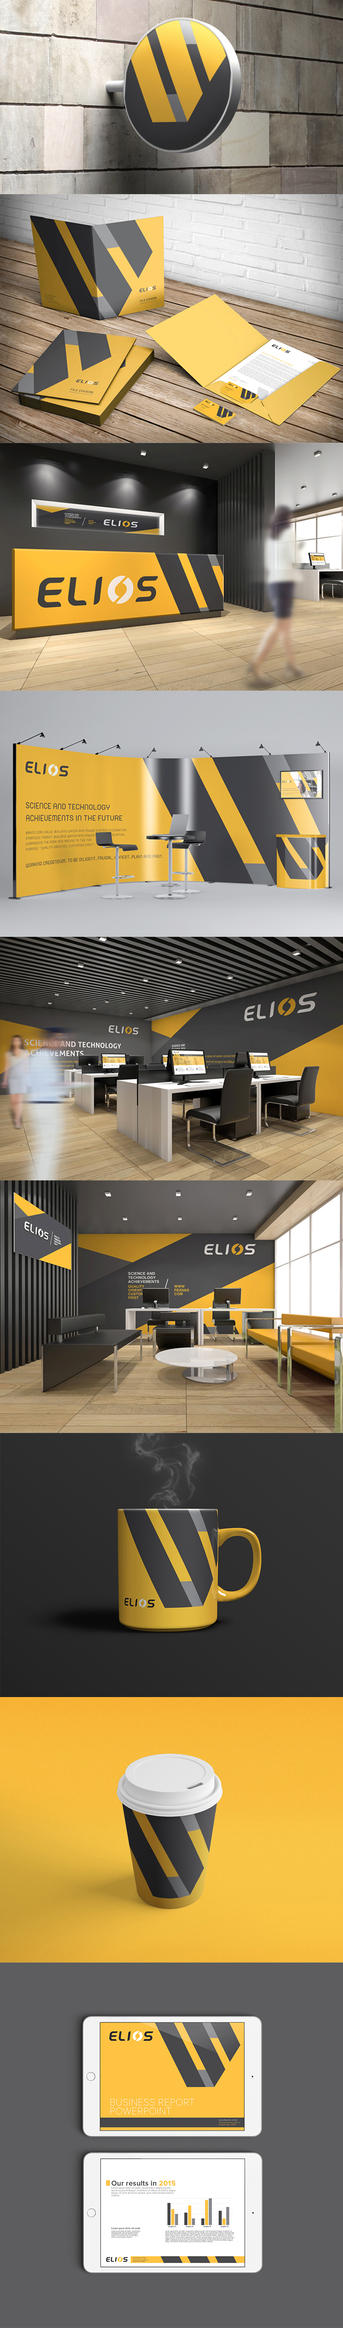 Elios Branding corporate identity by Lemongraphic